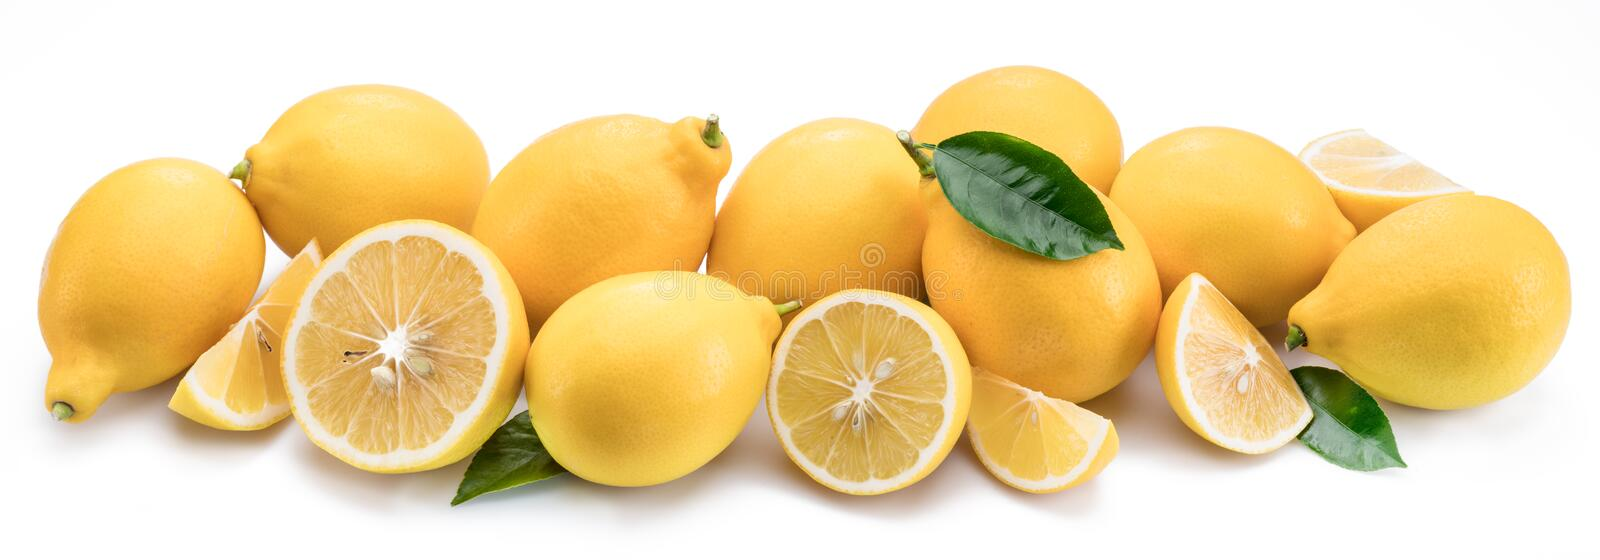 Lot of lemon fruits with lemon leaf isolated. Horizontal photo. stock image